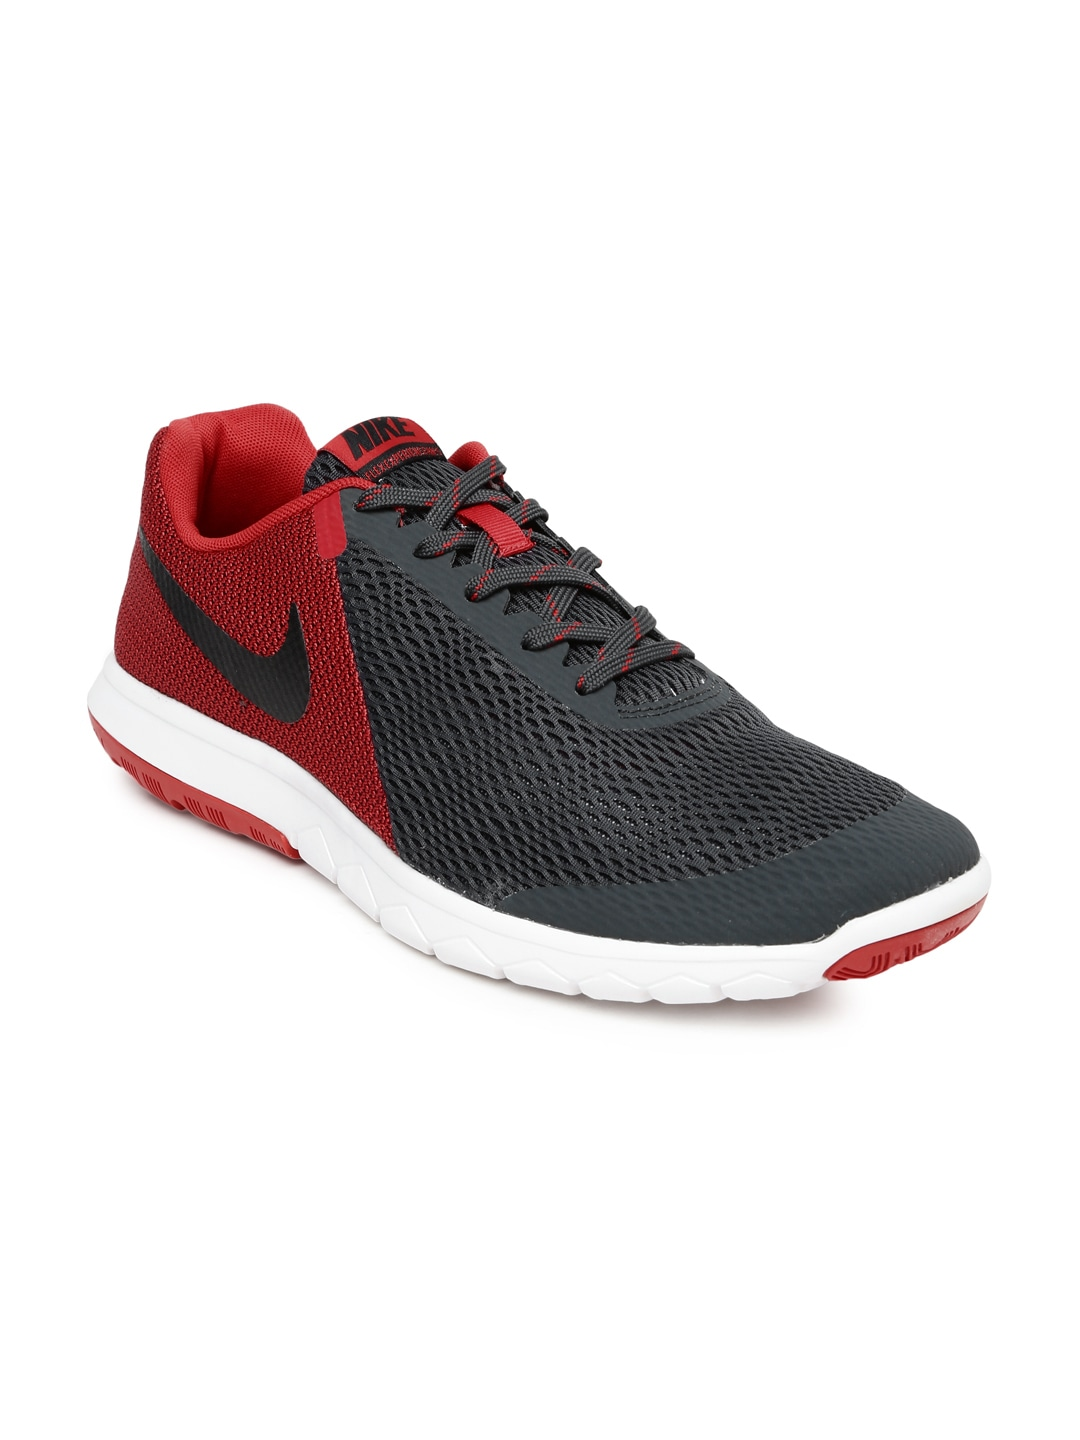 Nike Men Charcoal Grey  Red Flex Experience RN 5 Running Shoes price in India